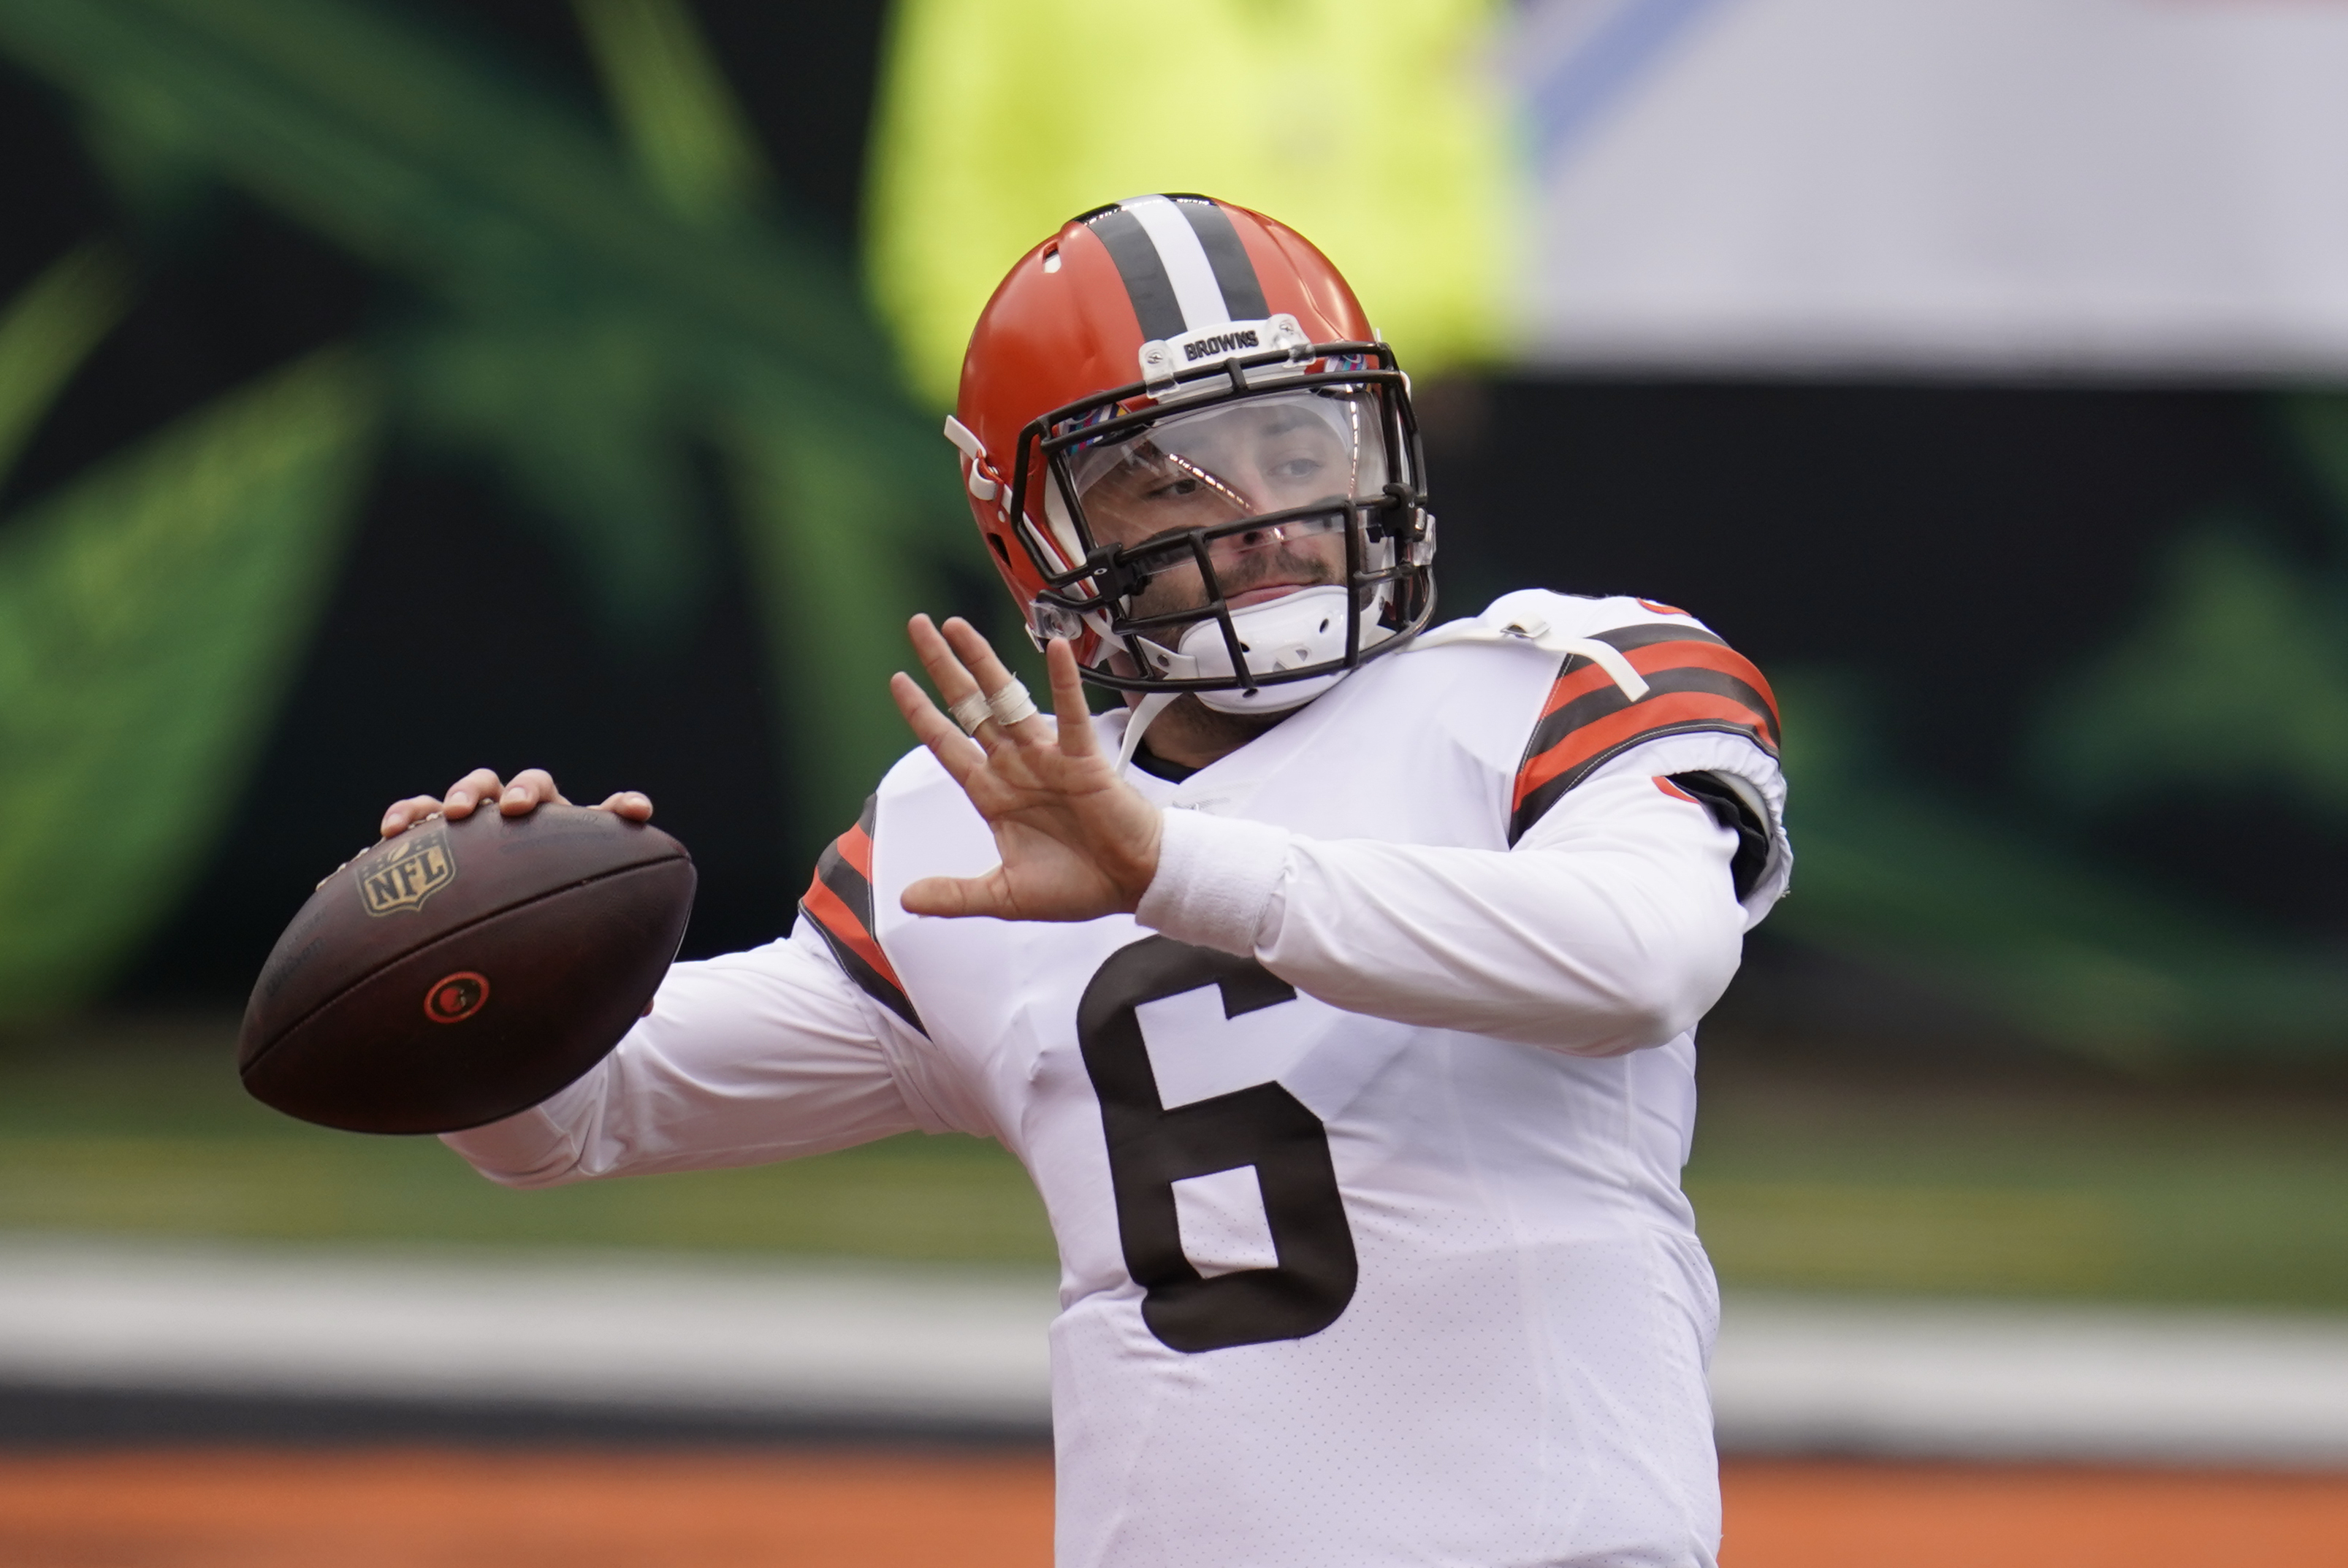 Browns place QB Baker Mayfield on COVID 21 list during bye ...